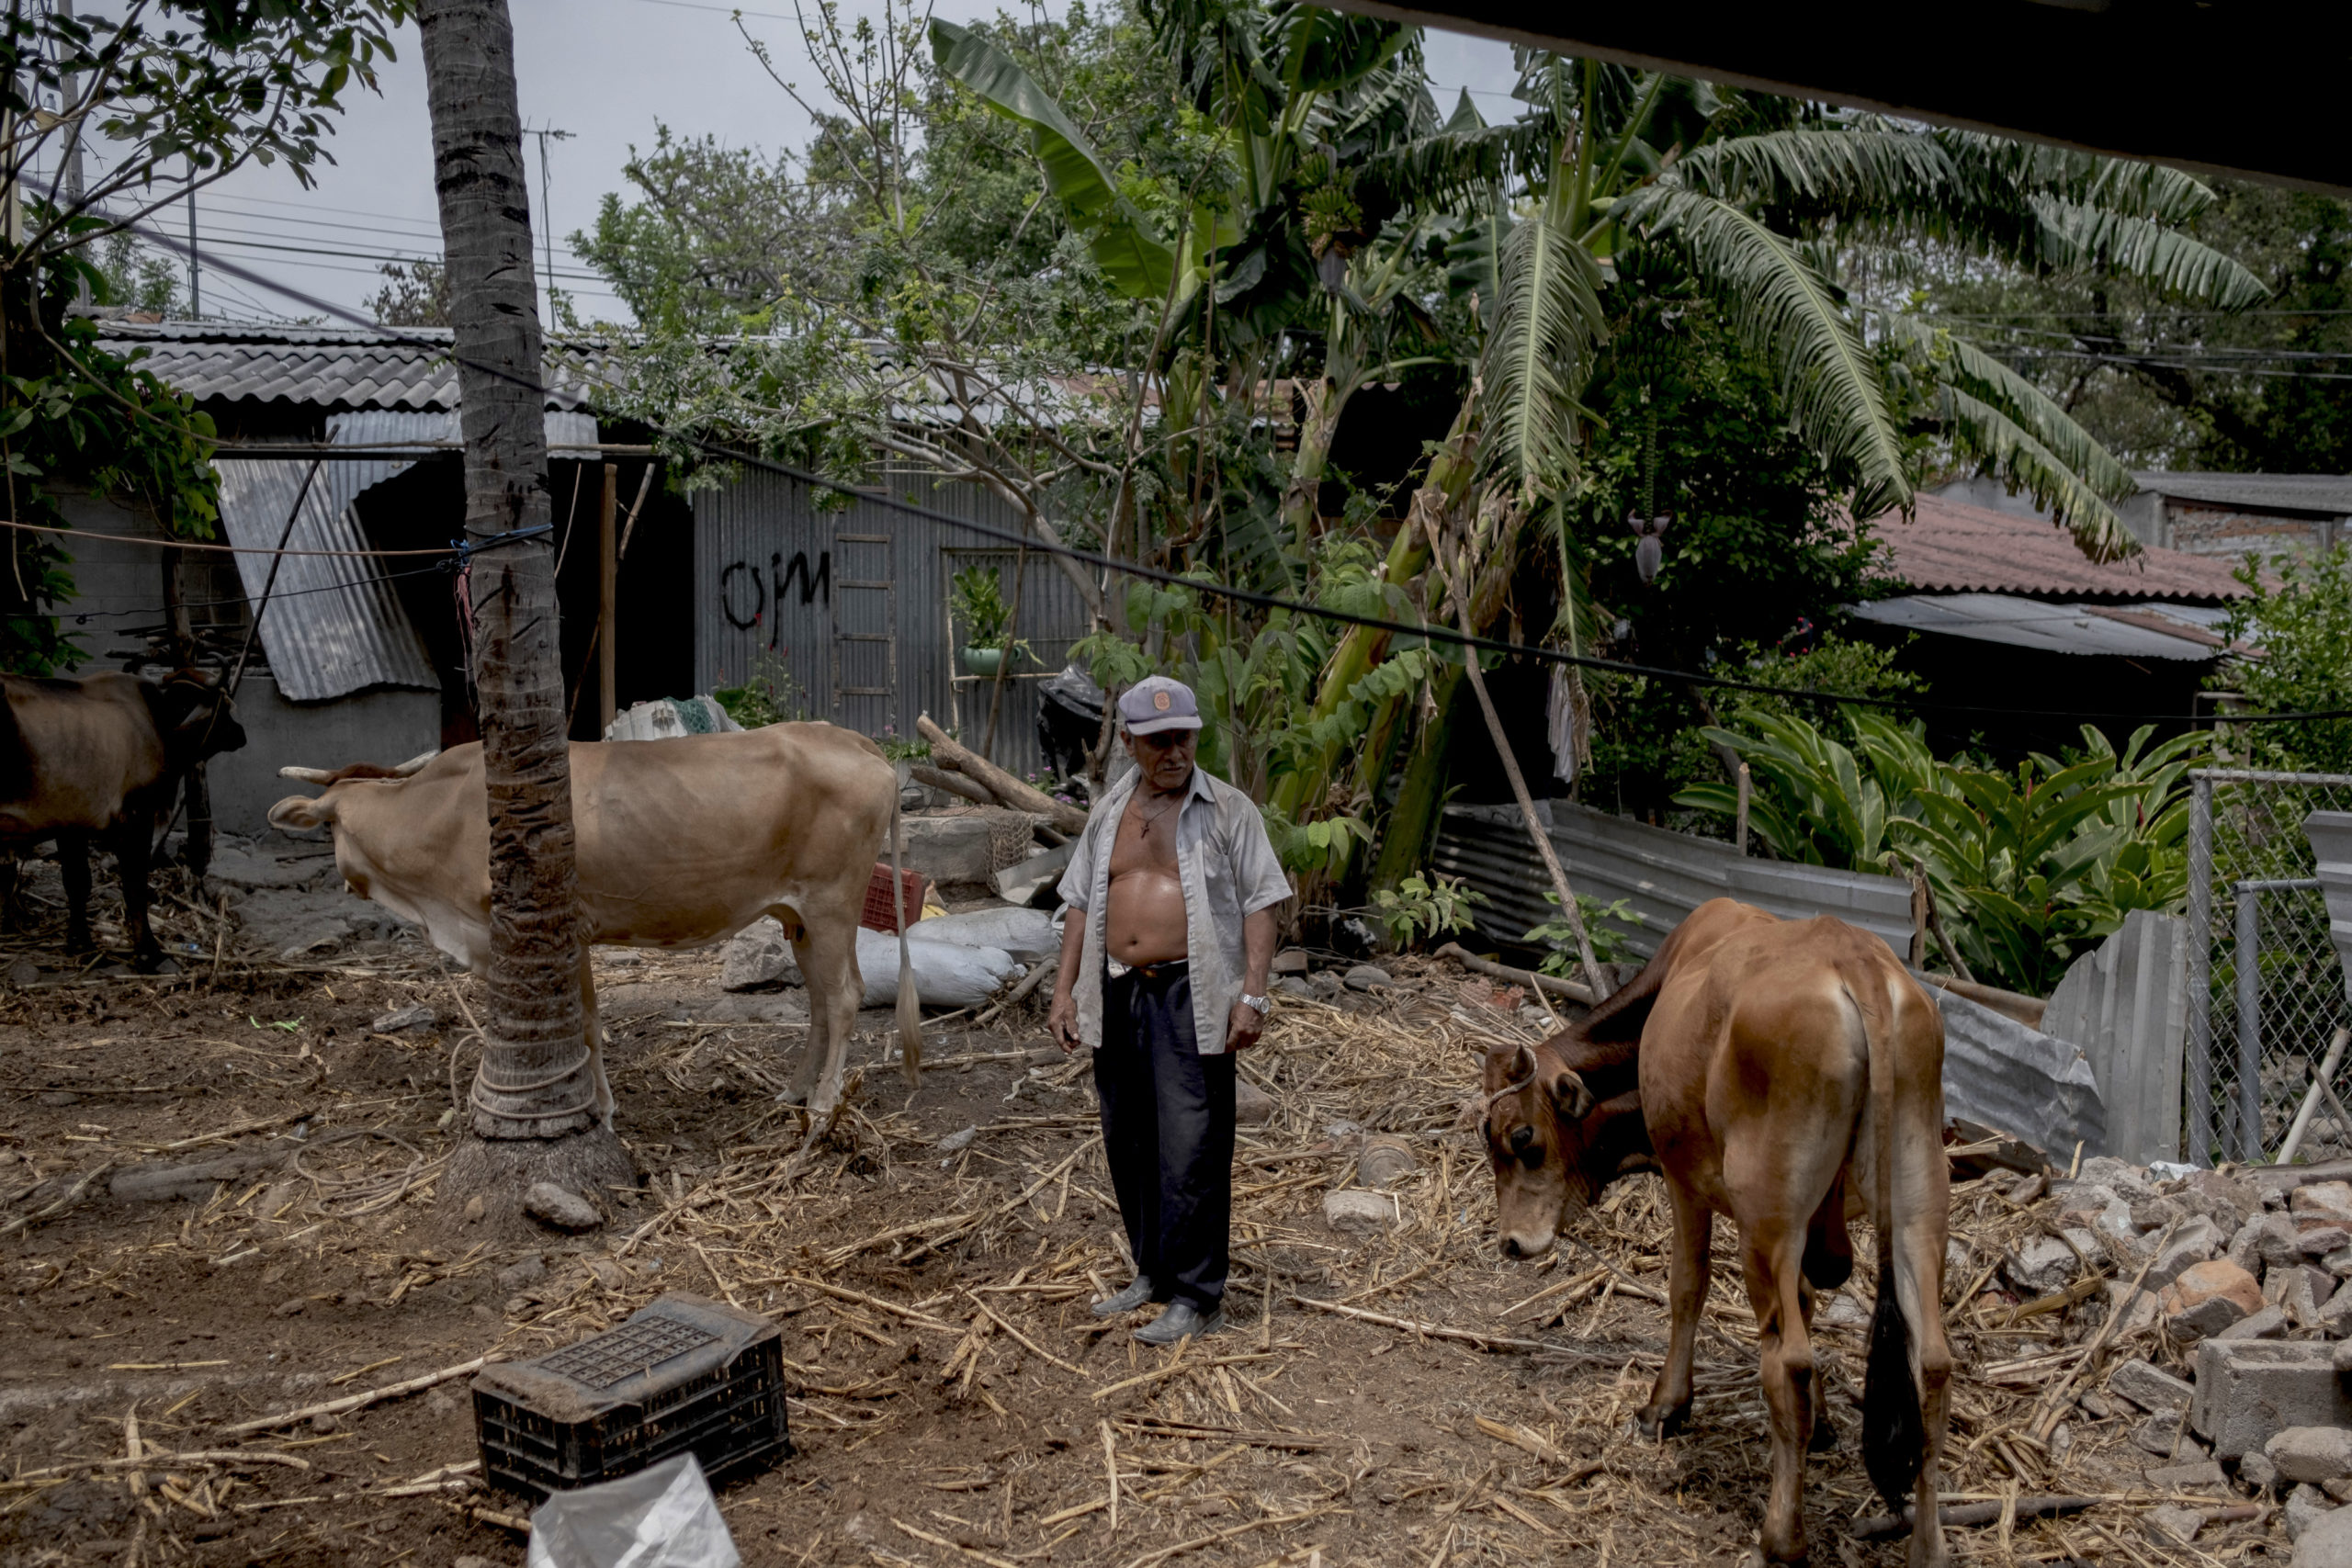 Francisco Hernandez, 65, watches his livestock on April 27, 2021 in San Juan Talpa, El Salvador. US Vice President Kamala Harris announced on Monday a humanitarian aid package of 310 million dollars for El Salvador, Honduras and Guatemala. (Photo by Fred Ramos/Getty Images)